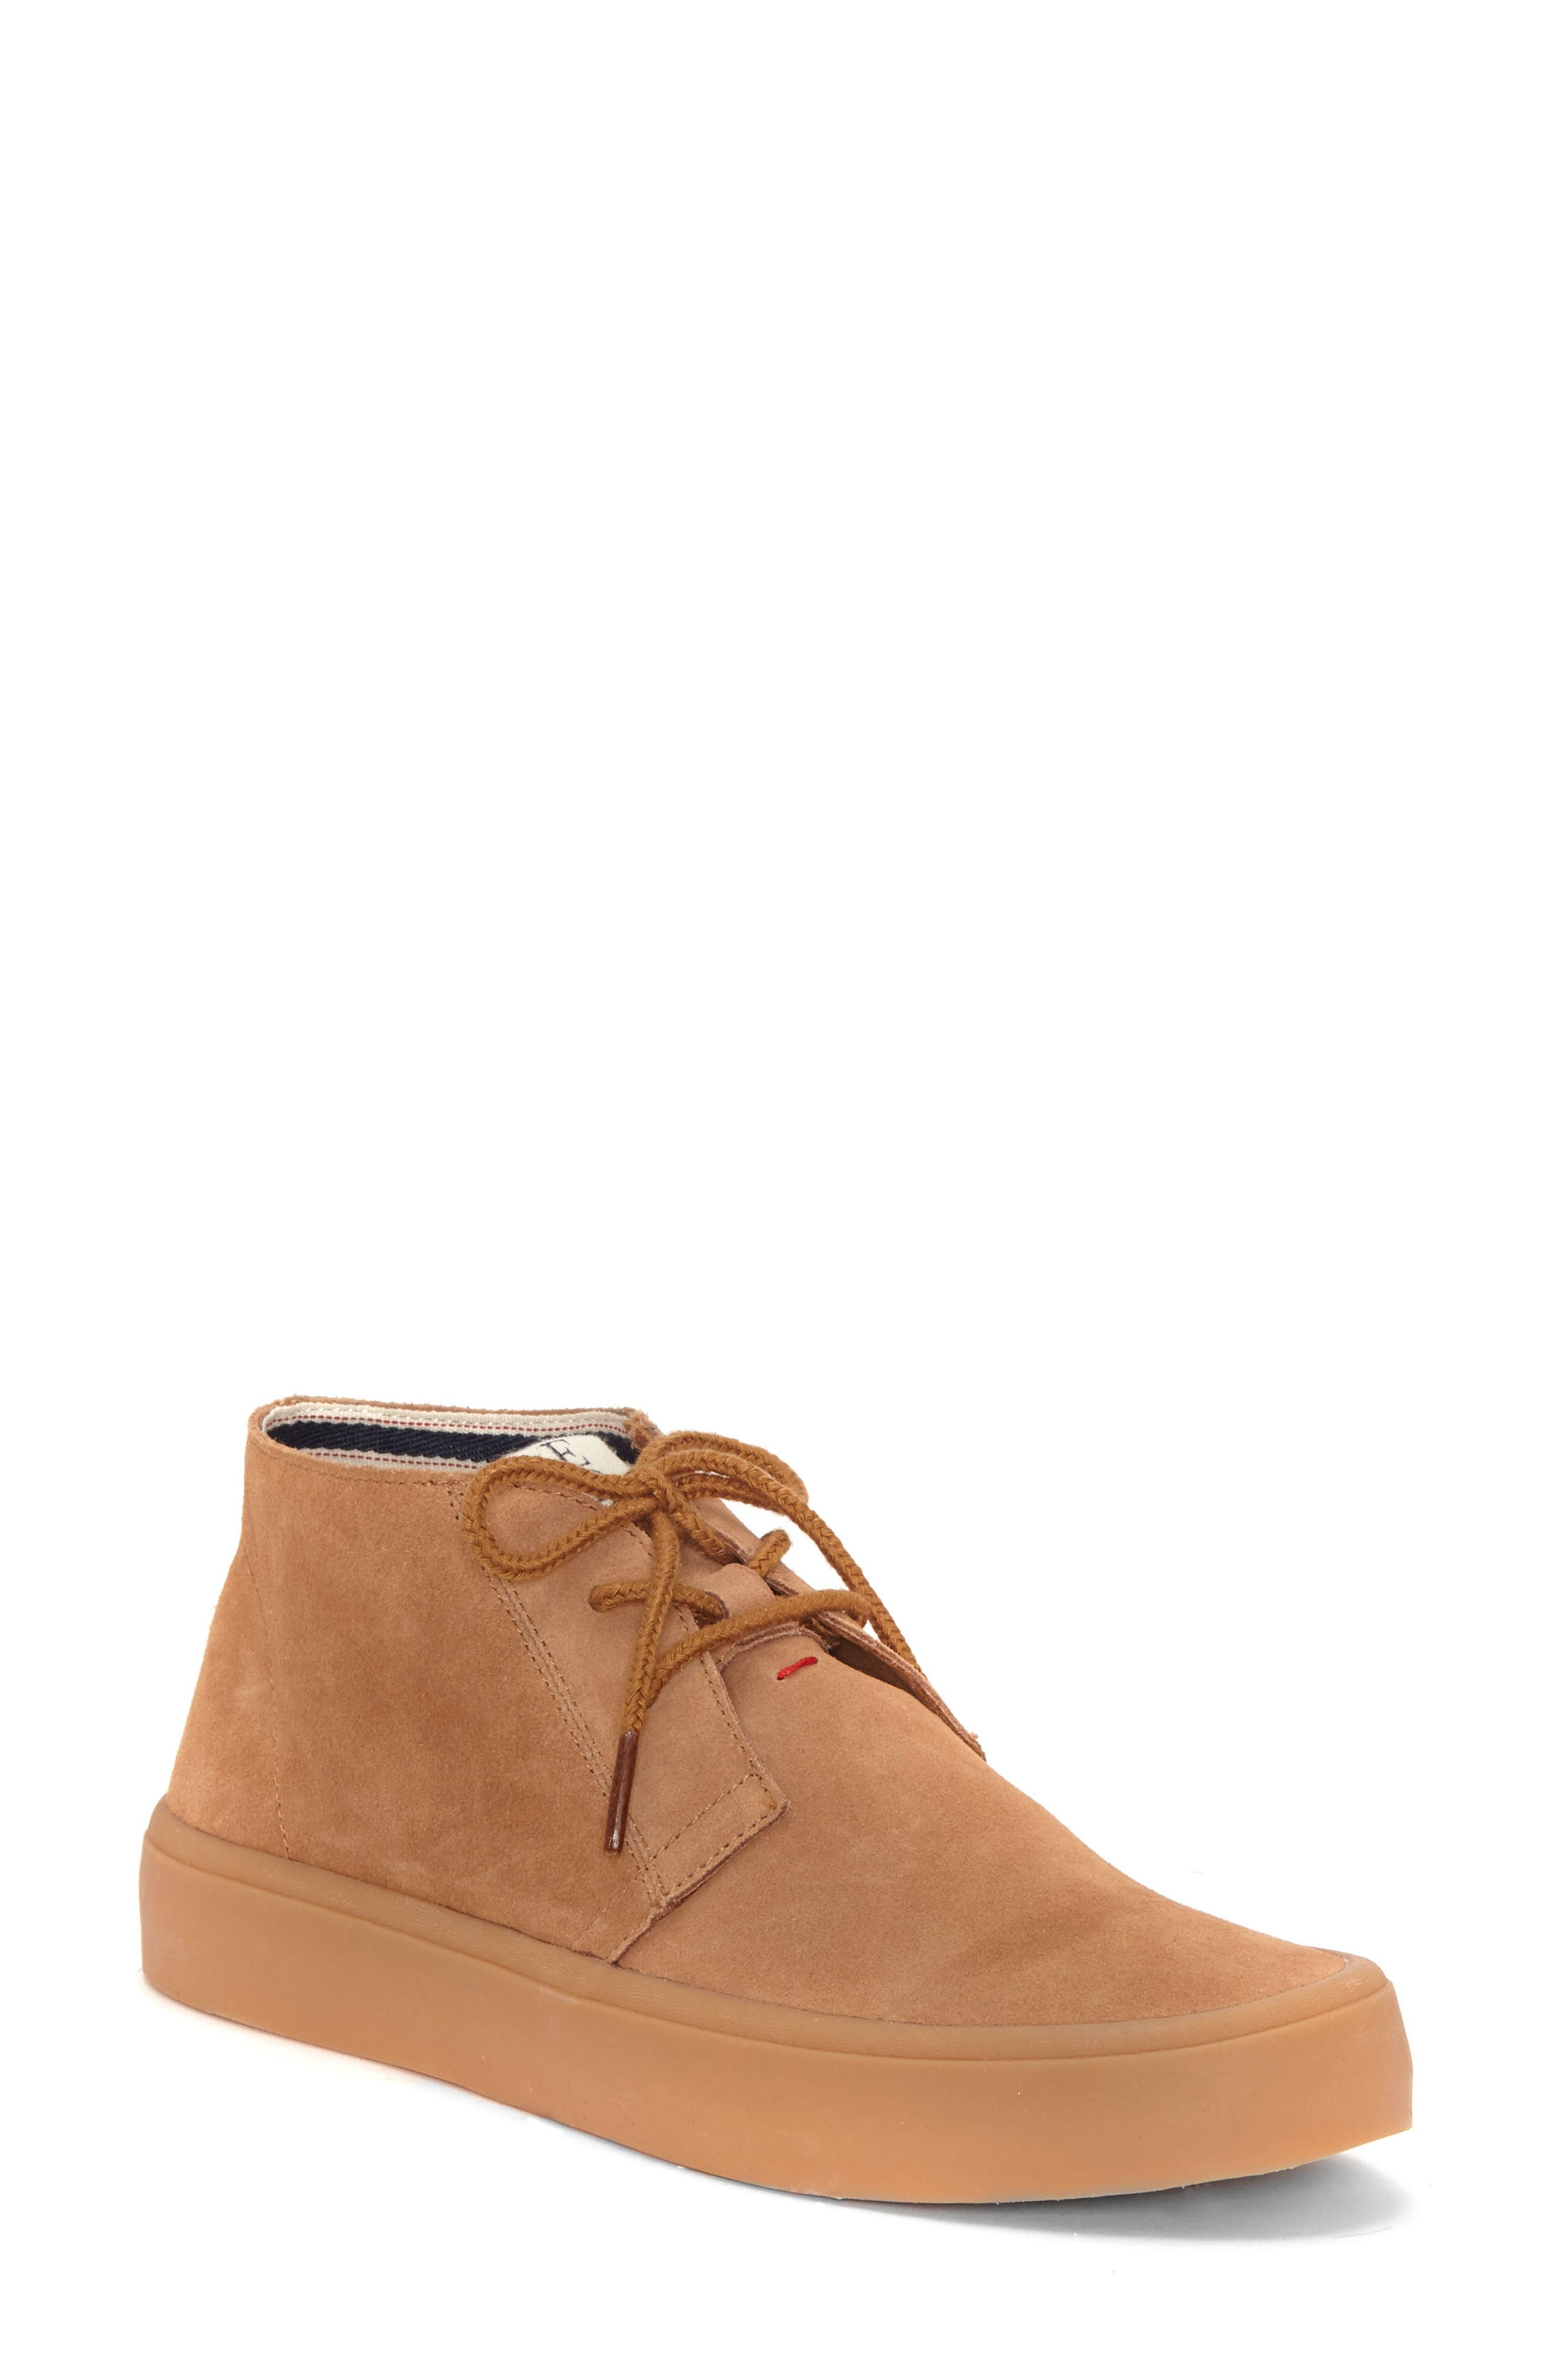 Dax Chukka Sneaker,                         Main,                         color, Honey Suede